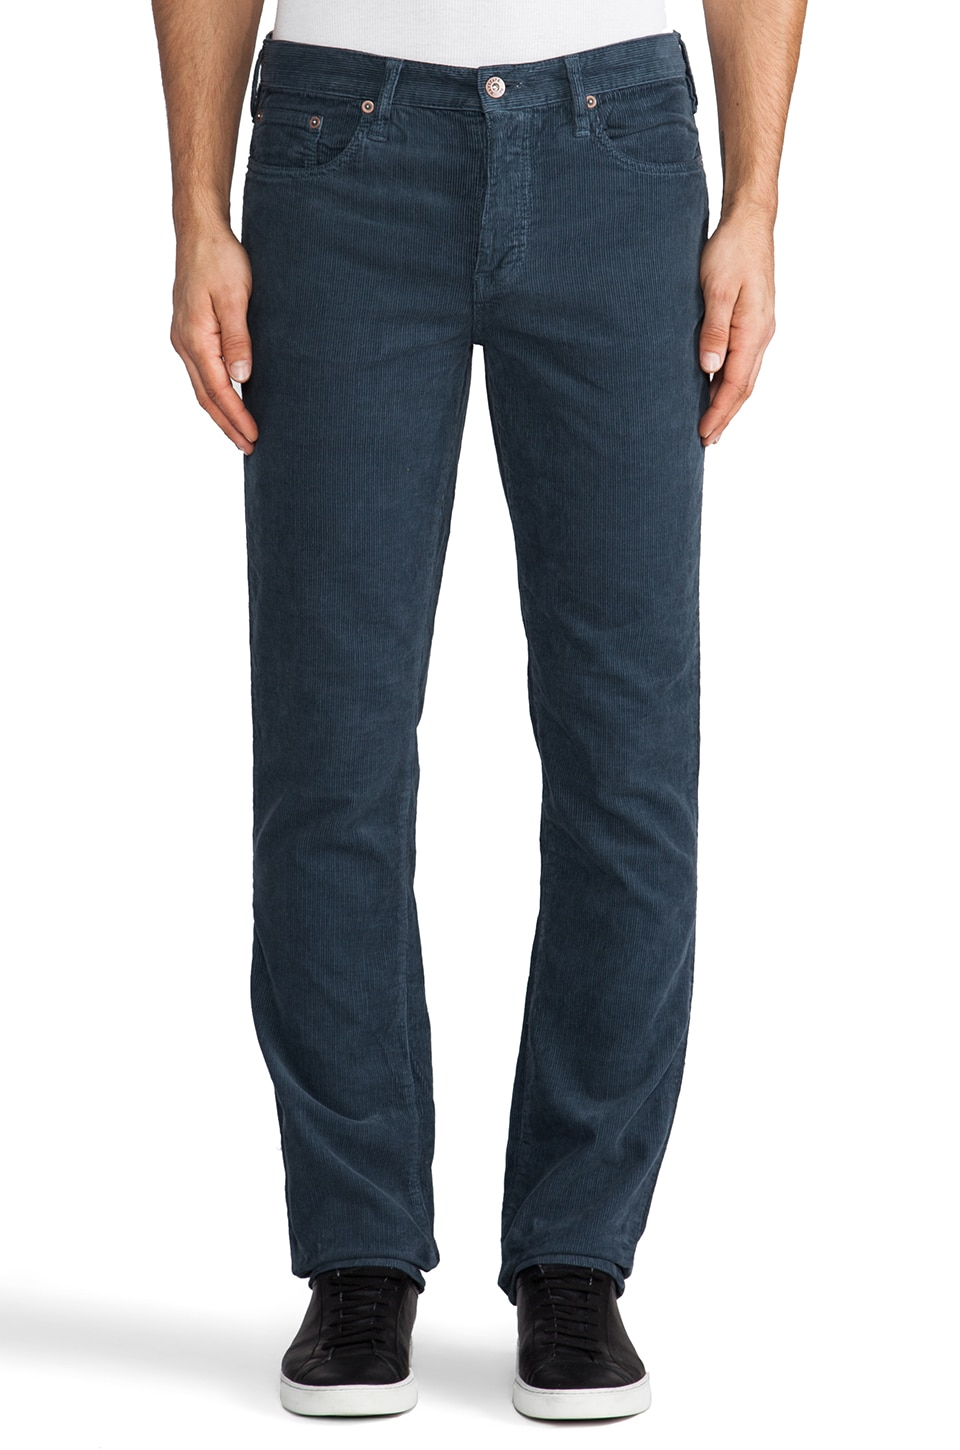 Hartford Corduroy in Slate Blue